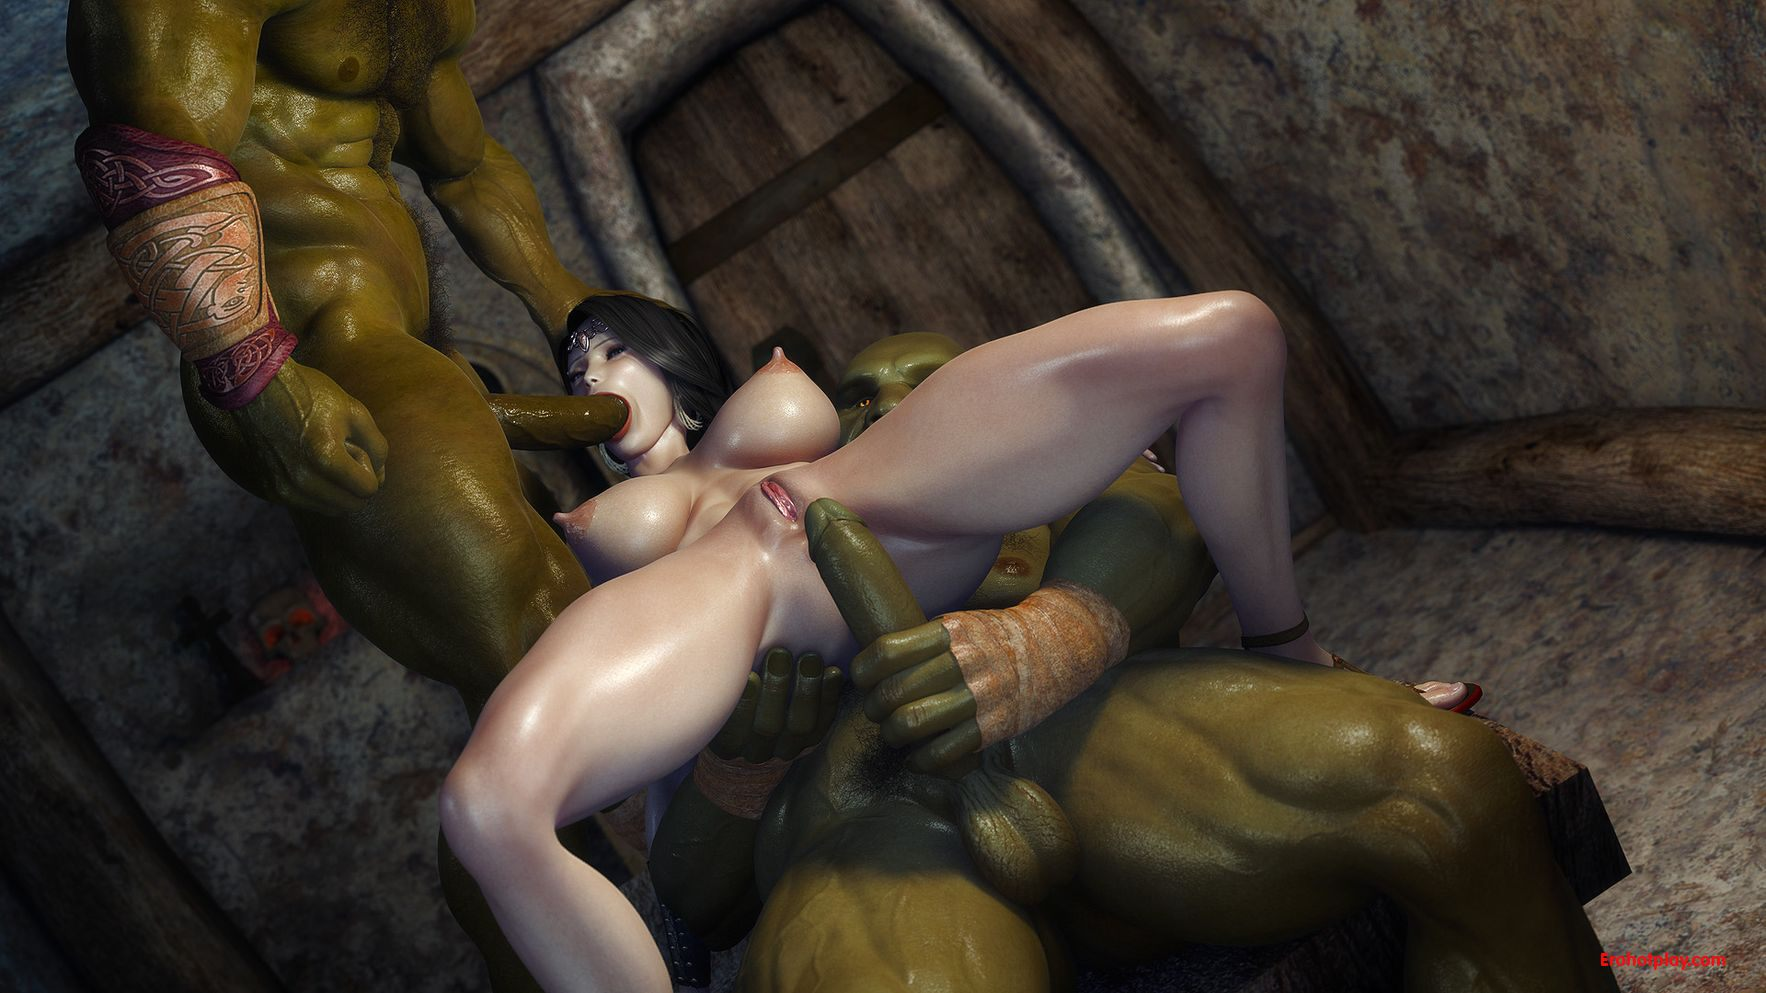 Elf gets fucked by ogre sex anime  erotica boob